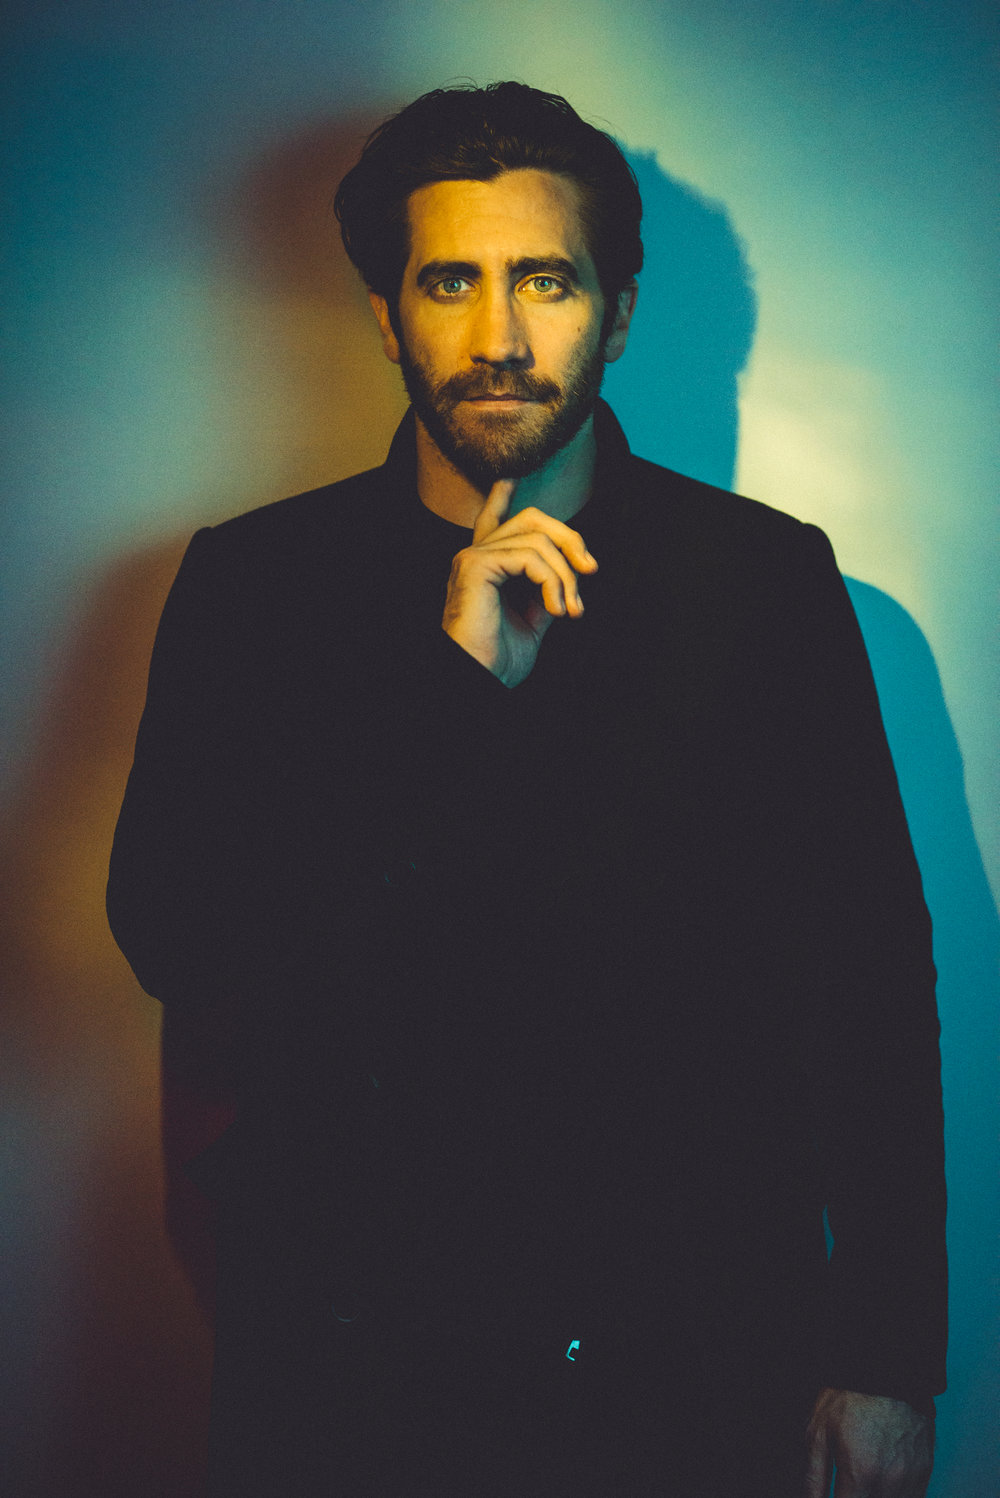 Jake Gyllenhaal for New York Times